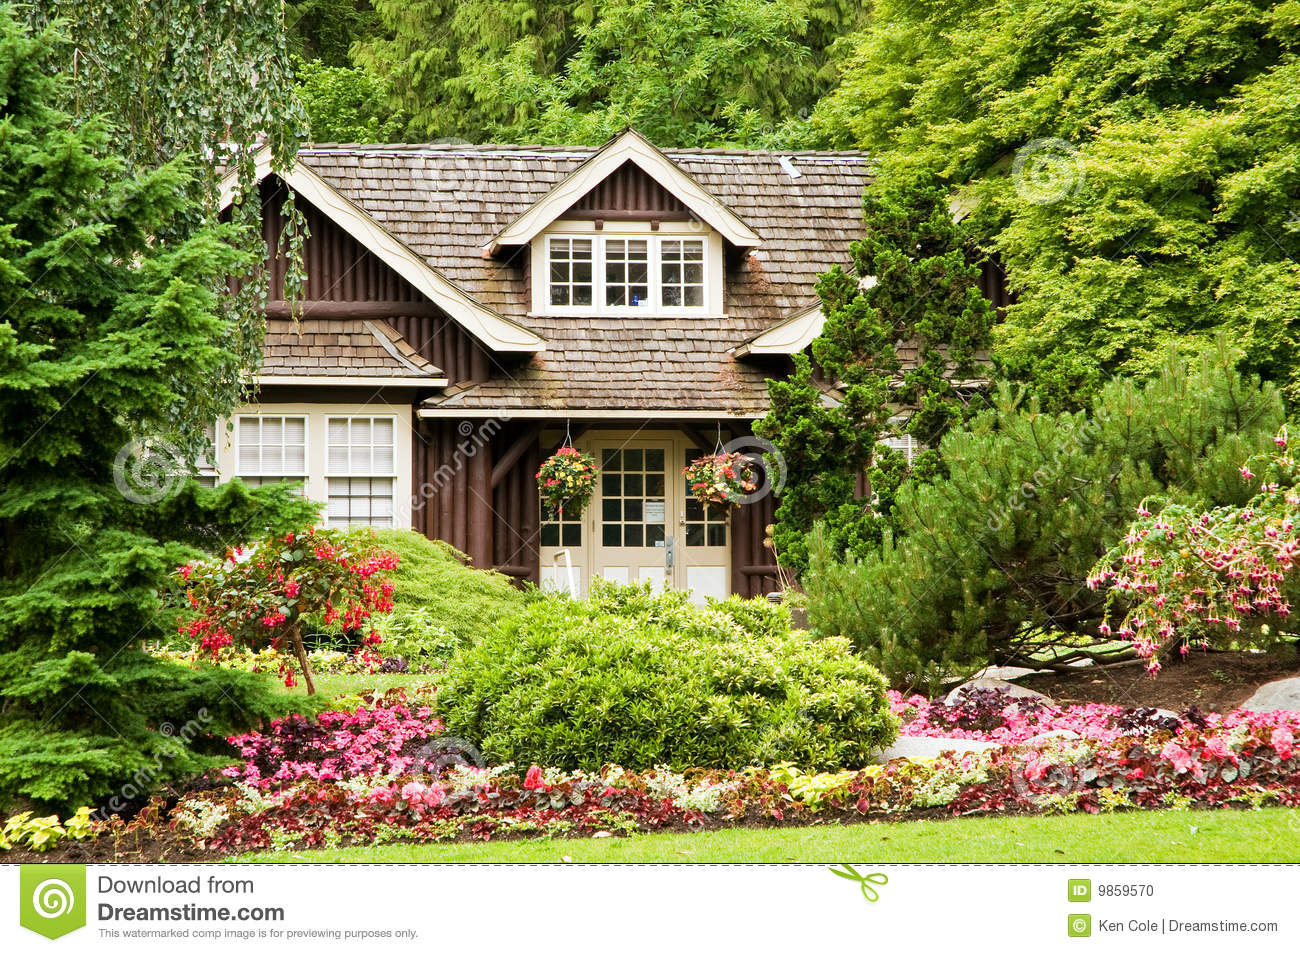 Landscaping Pictures For Log Homes : Landscaping log cabin stock photo image